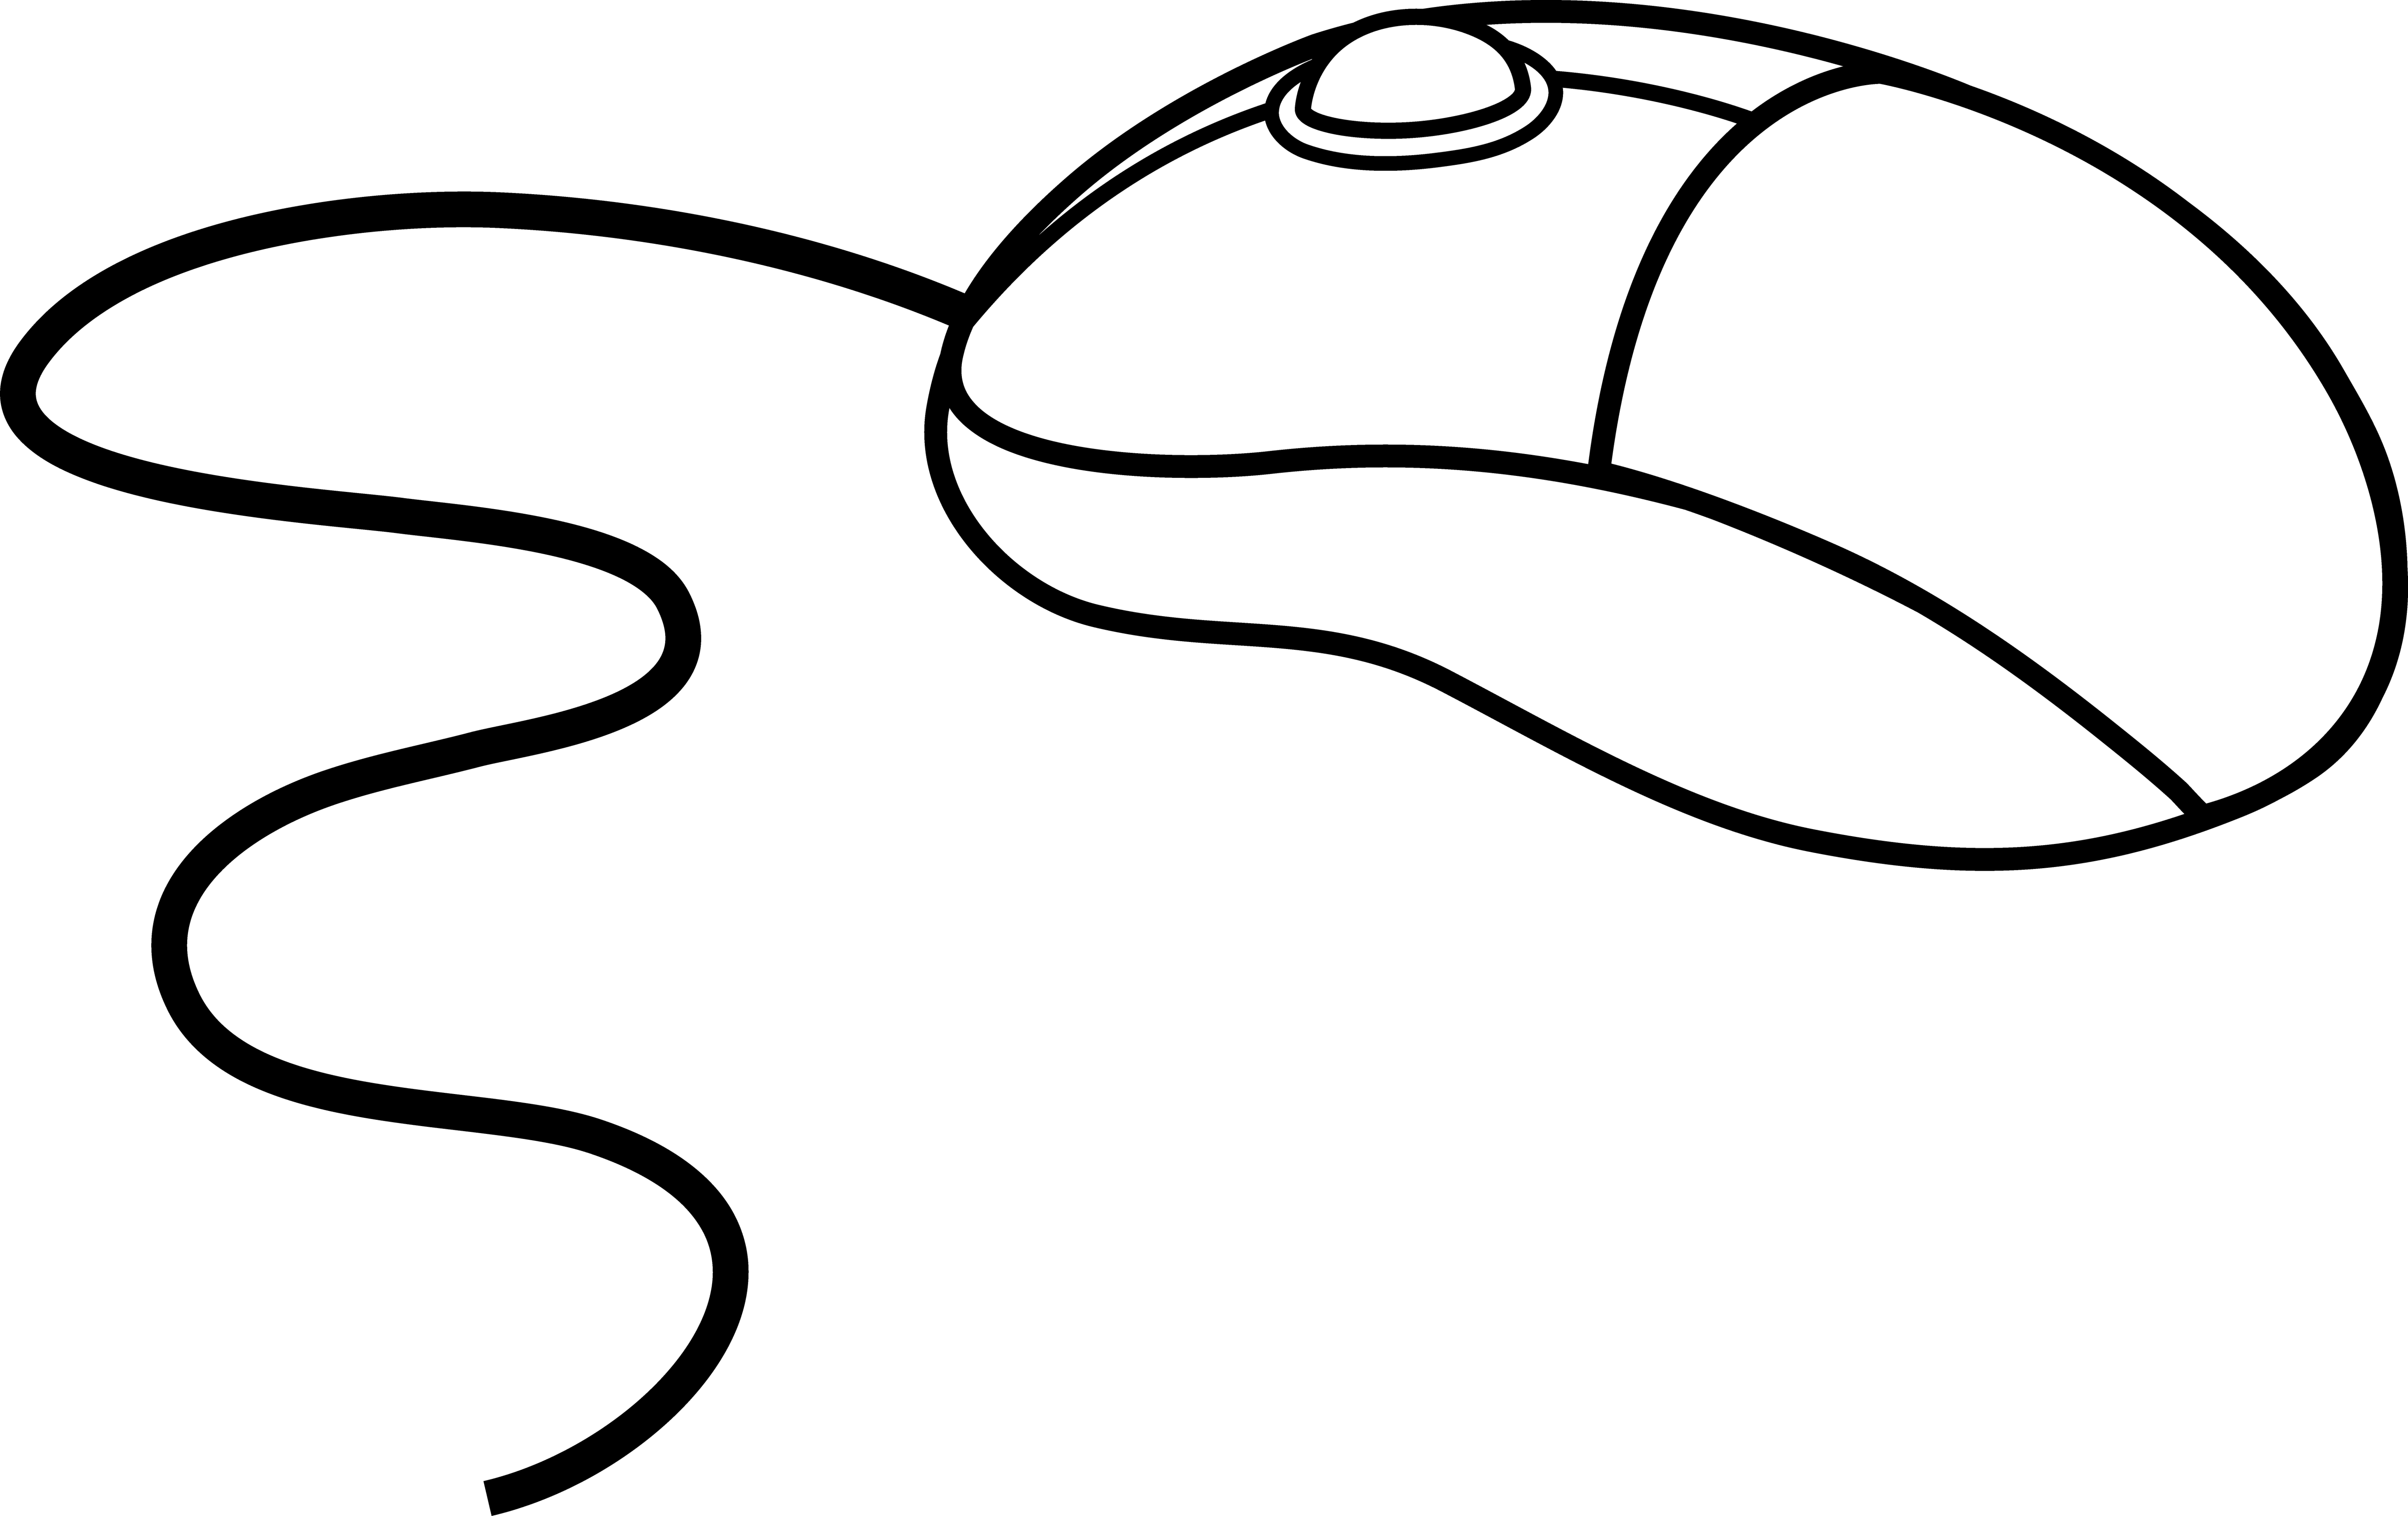 Mouse Clipart Black And White & Mouse Black And White Clip Art.